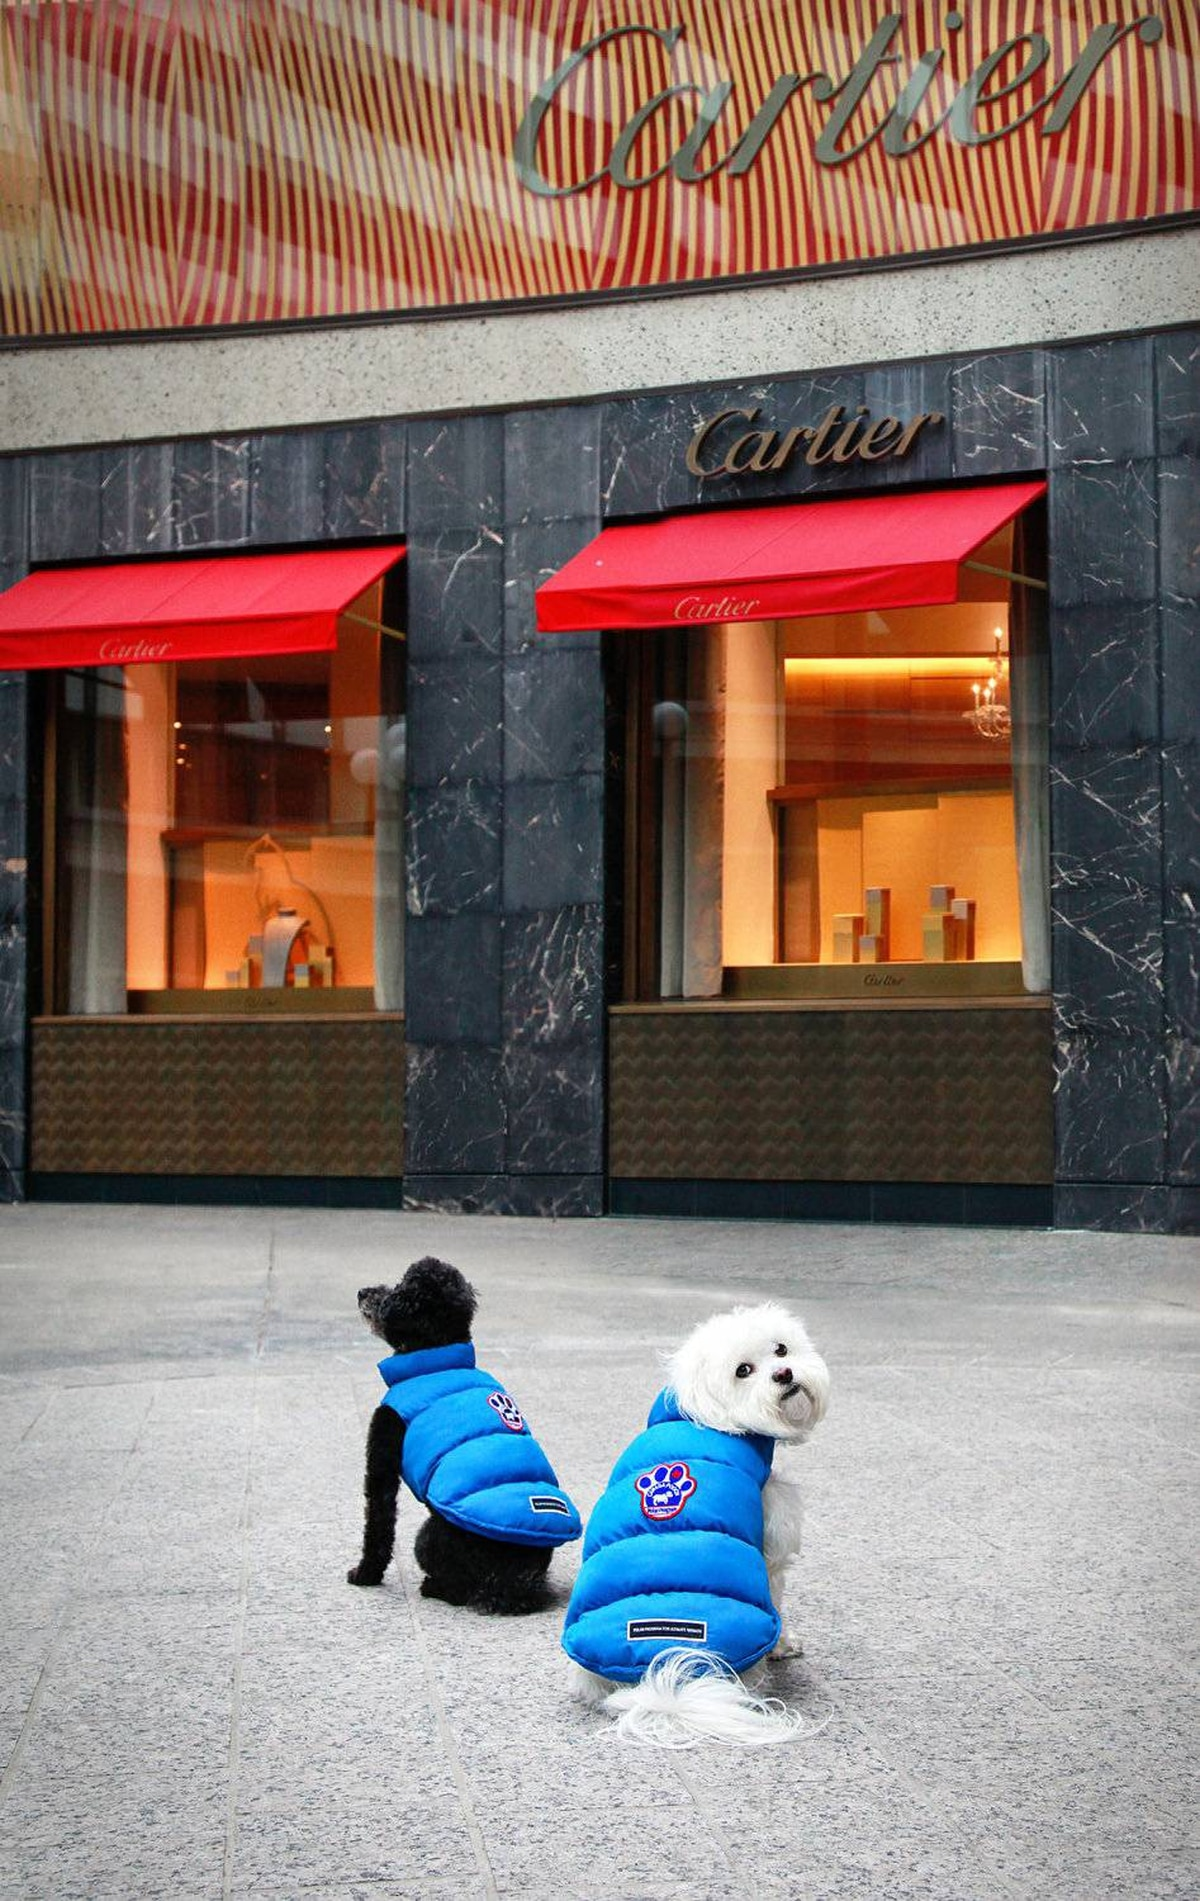 Kirby and Kelev window shopping at Cartier in their blue Arctic Adventurer Vests.